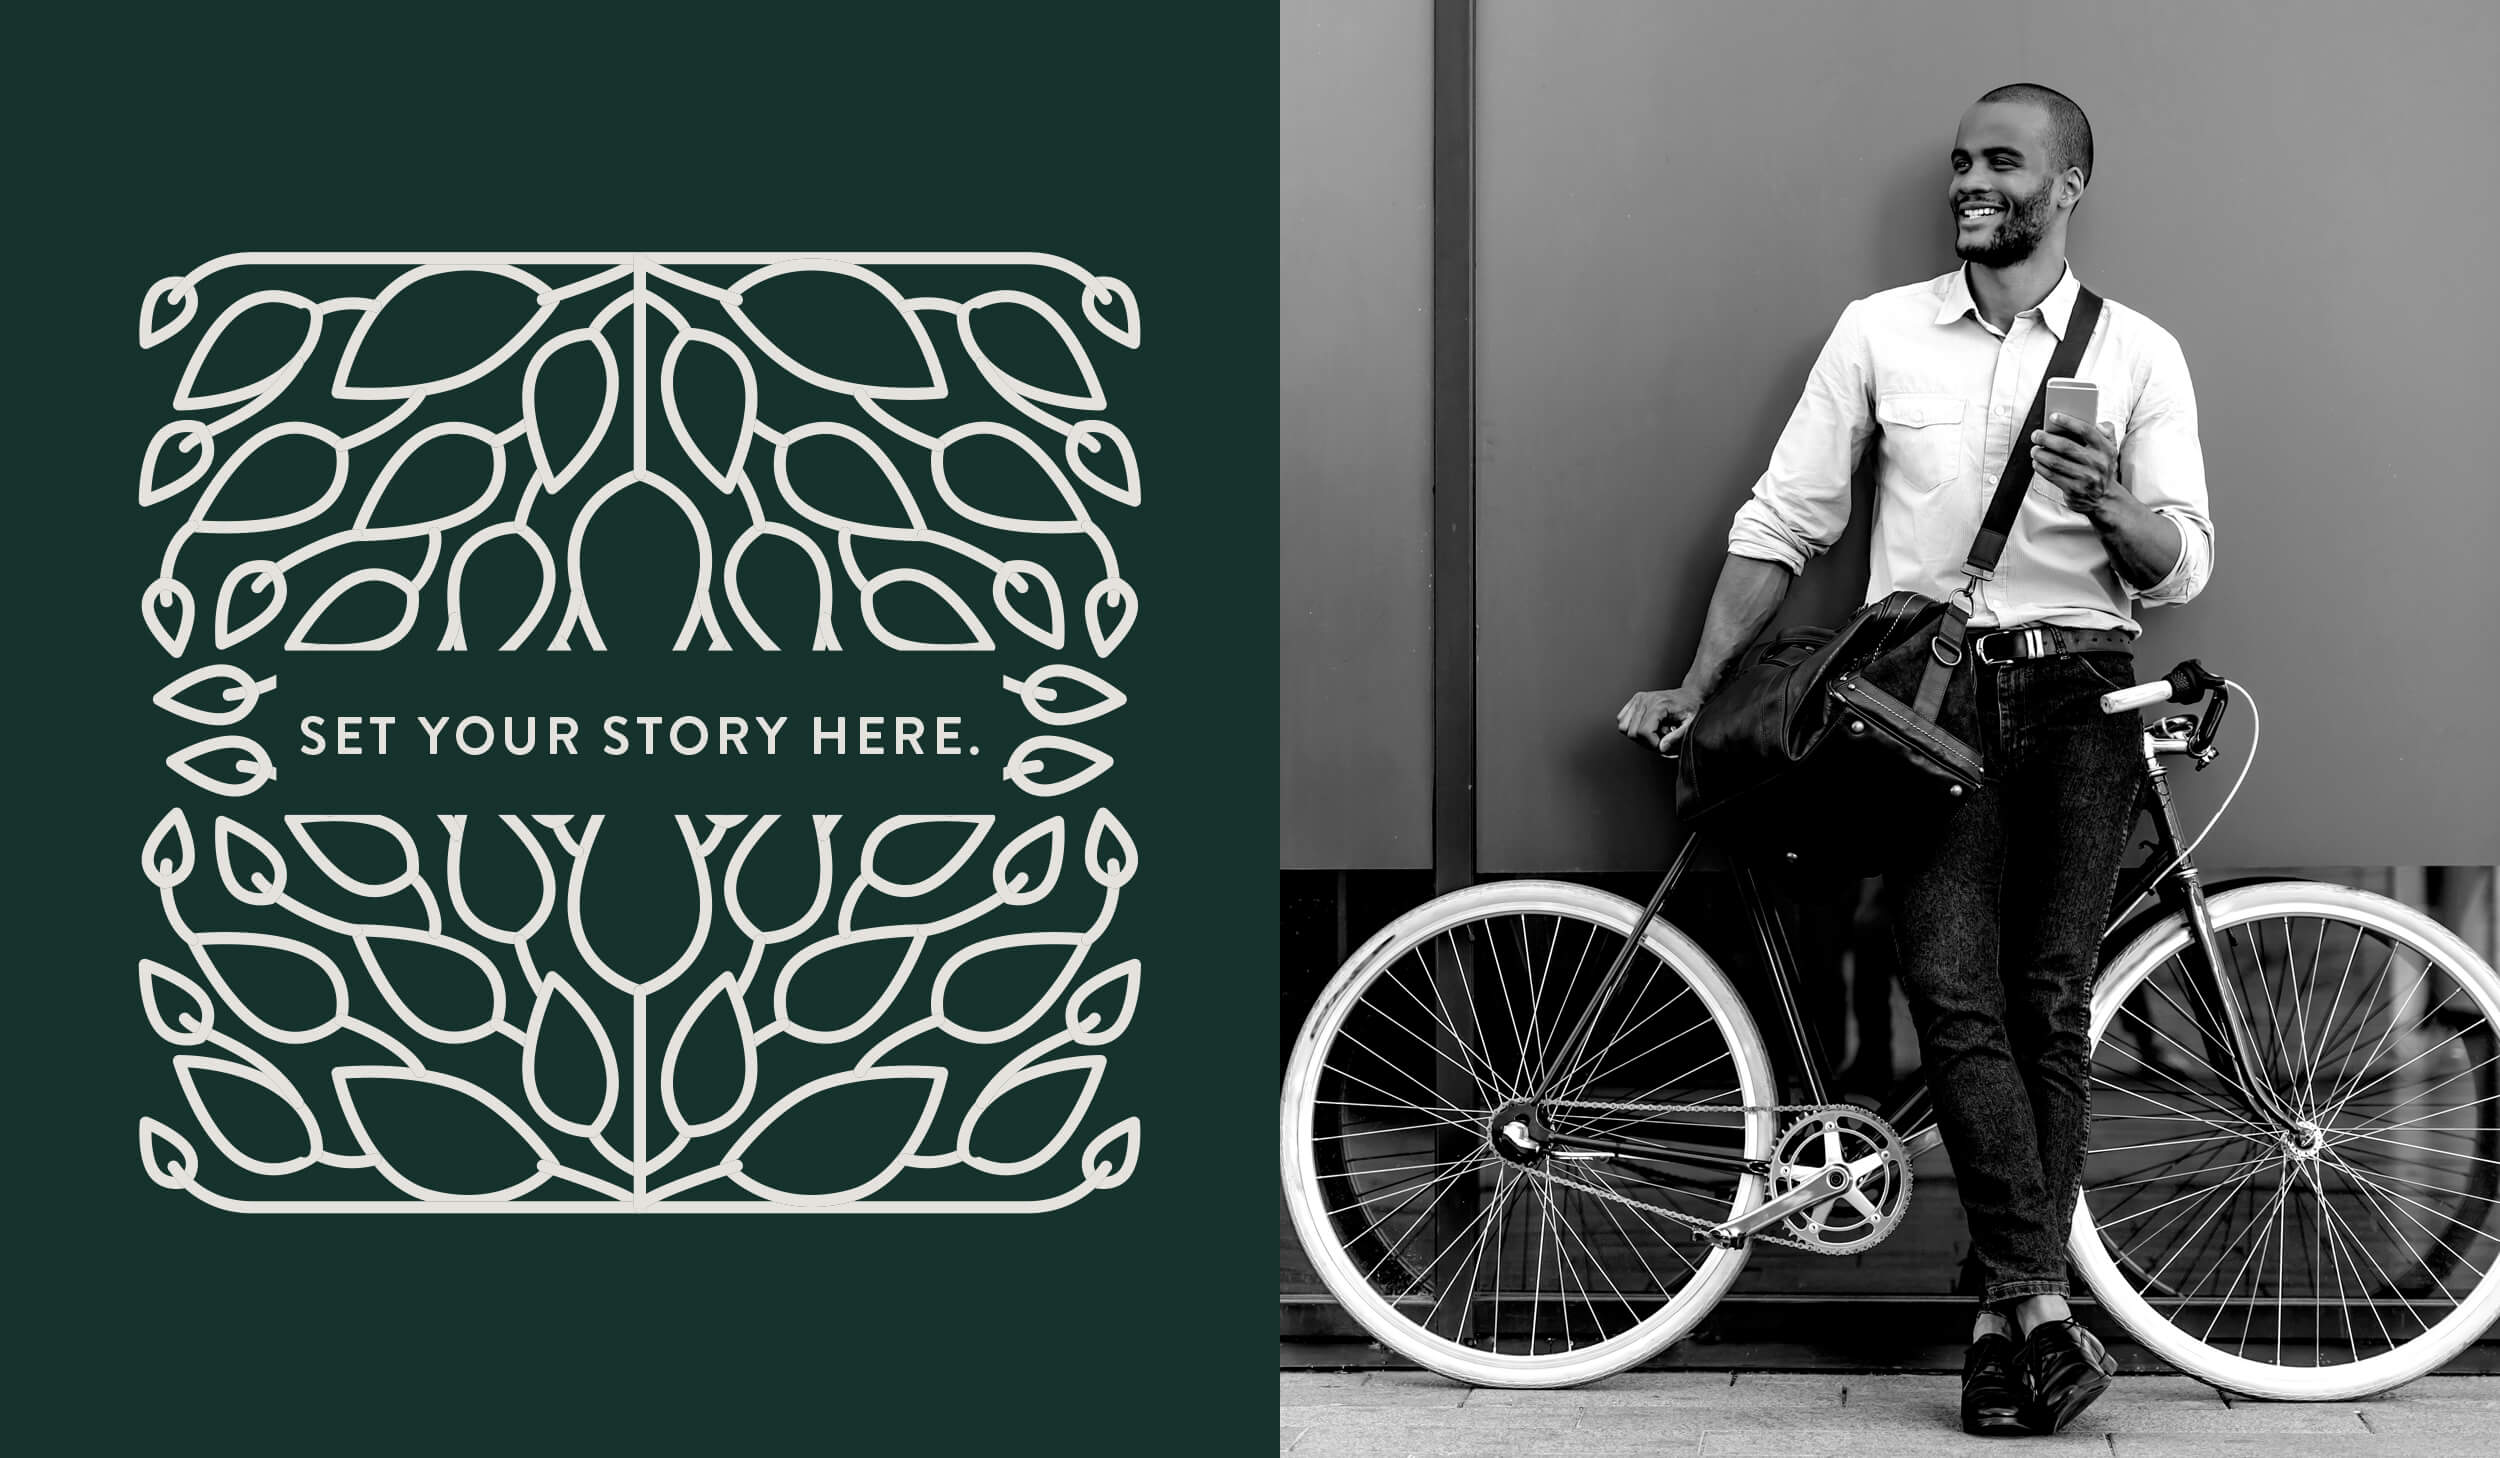 split image, on the left is a dark green rectangle with a white leaf graphic overlay and text that reads, Set Your Story Here and on the left is a black and white photo of a man in jeans and dress shirt leaning against a bicycle